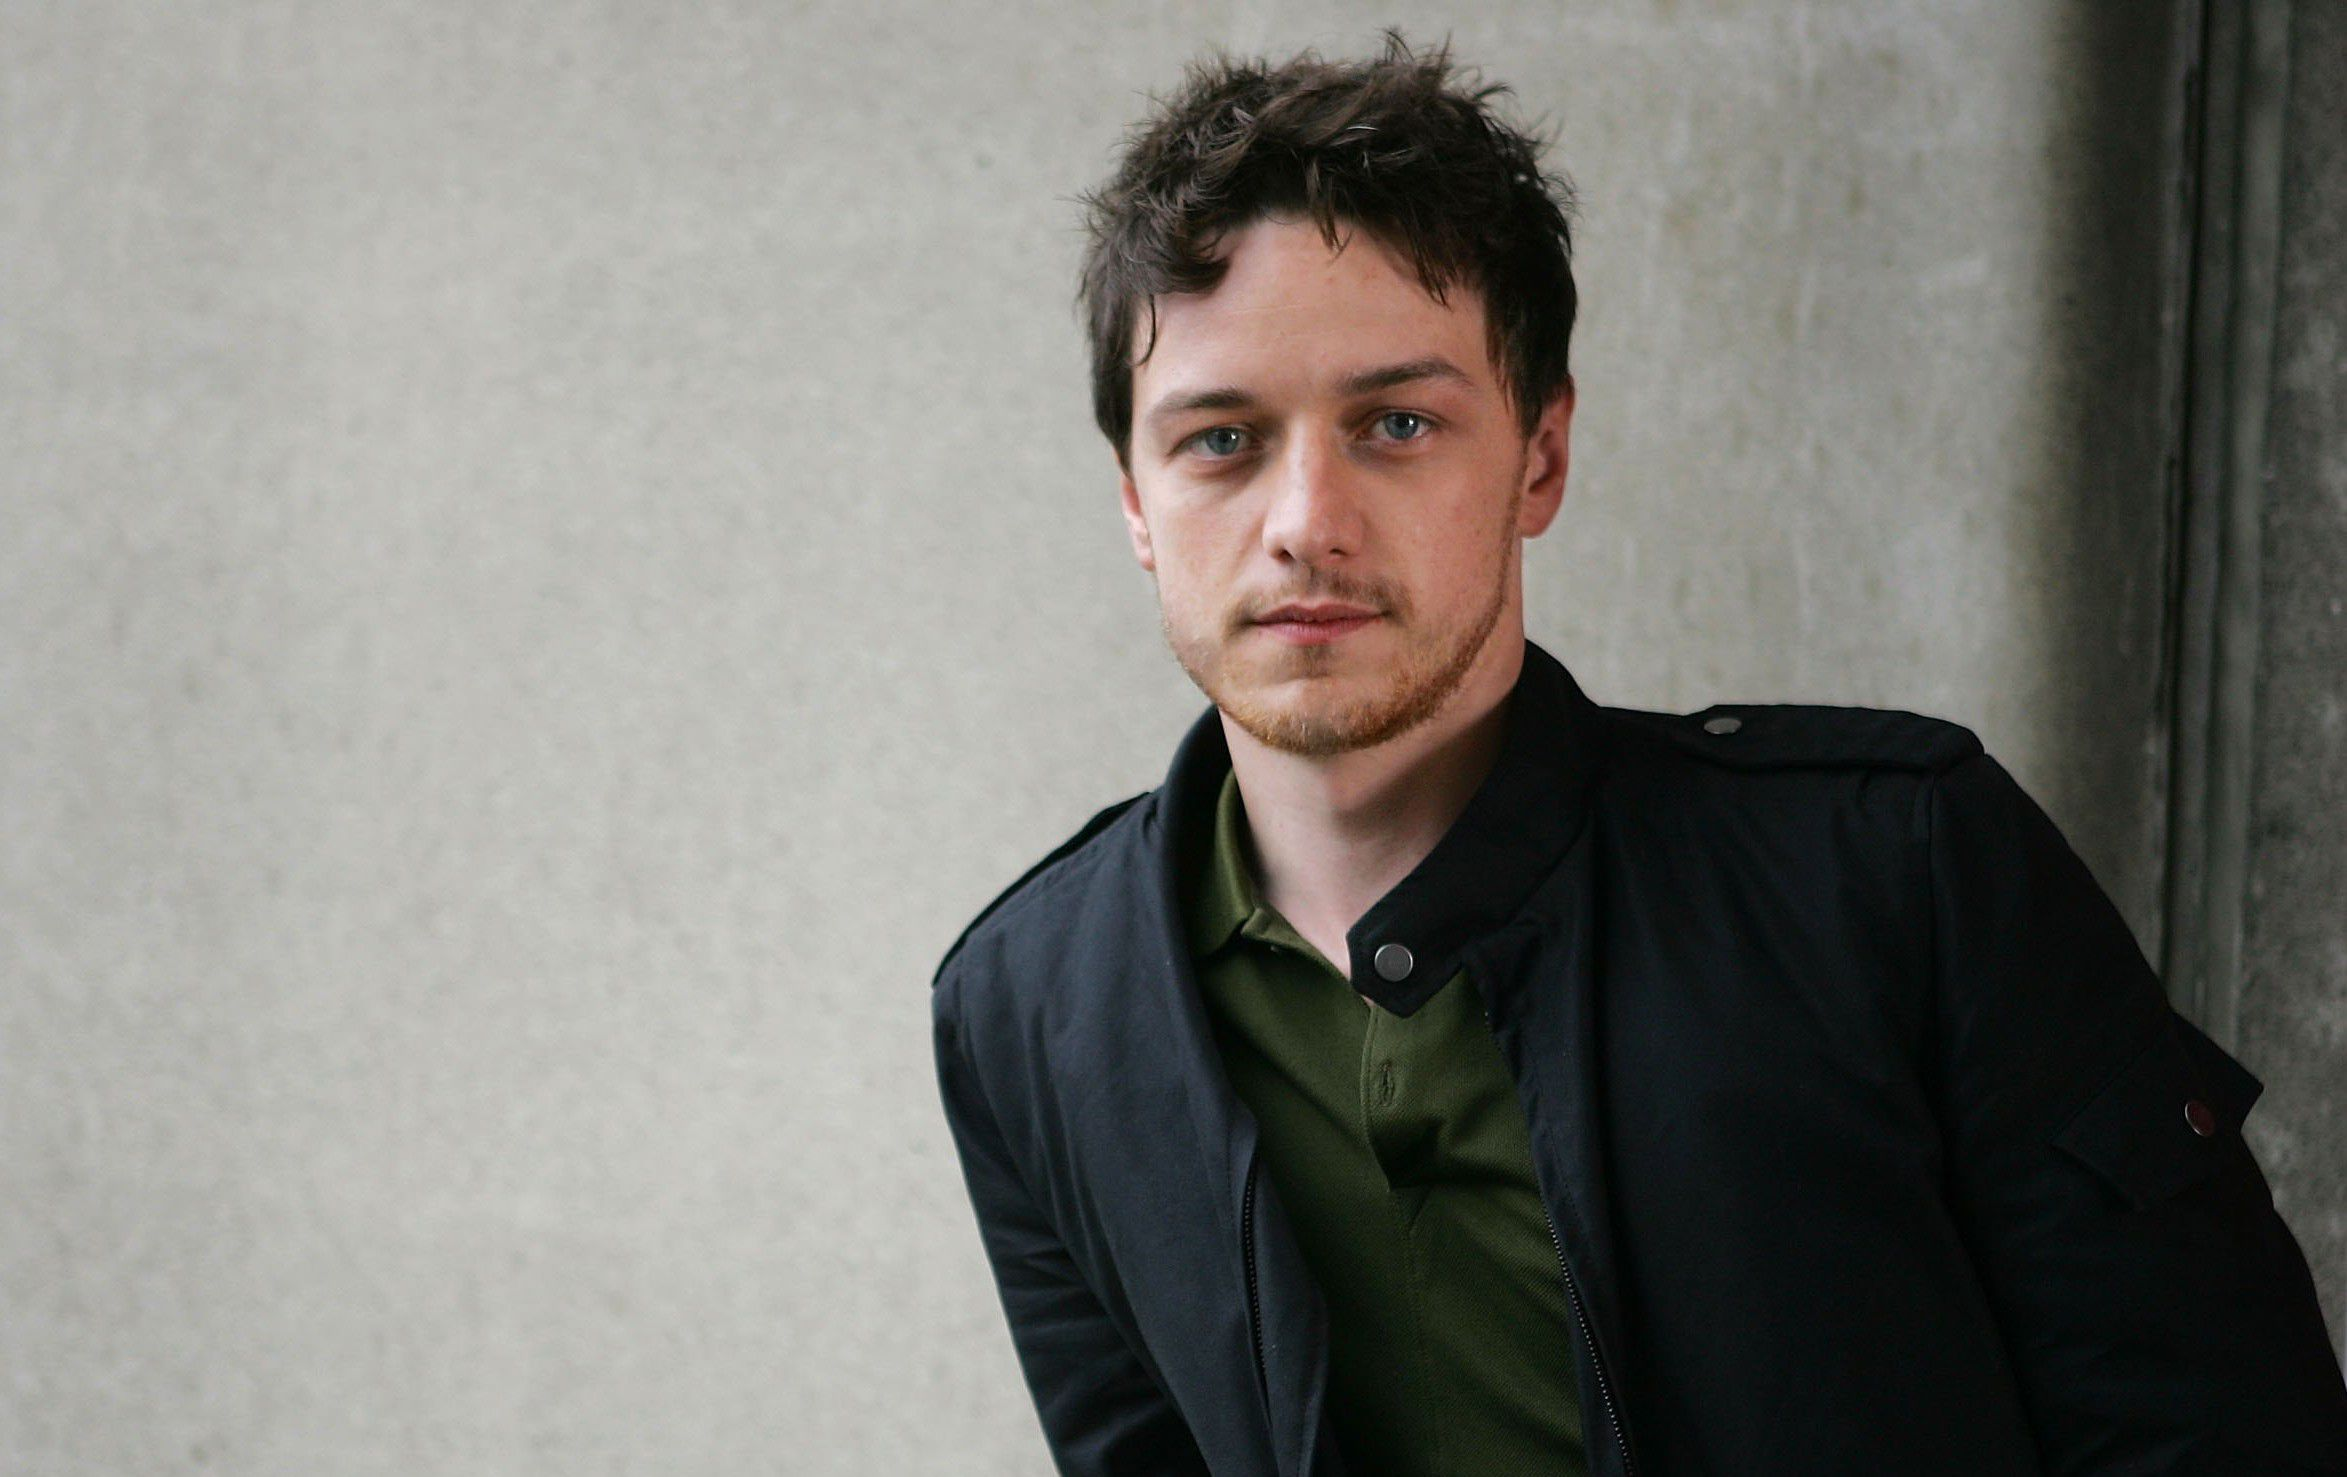 James McAvoy (born 1979) nudes (29 photo), Ass, Fappening, Feet, bra 2020